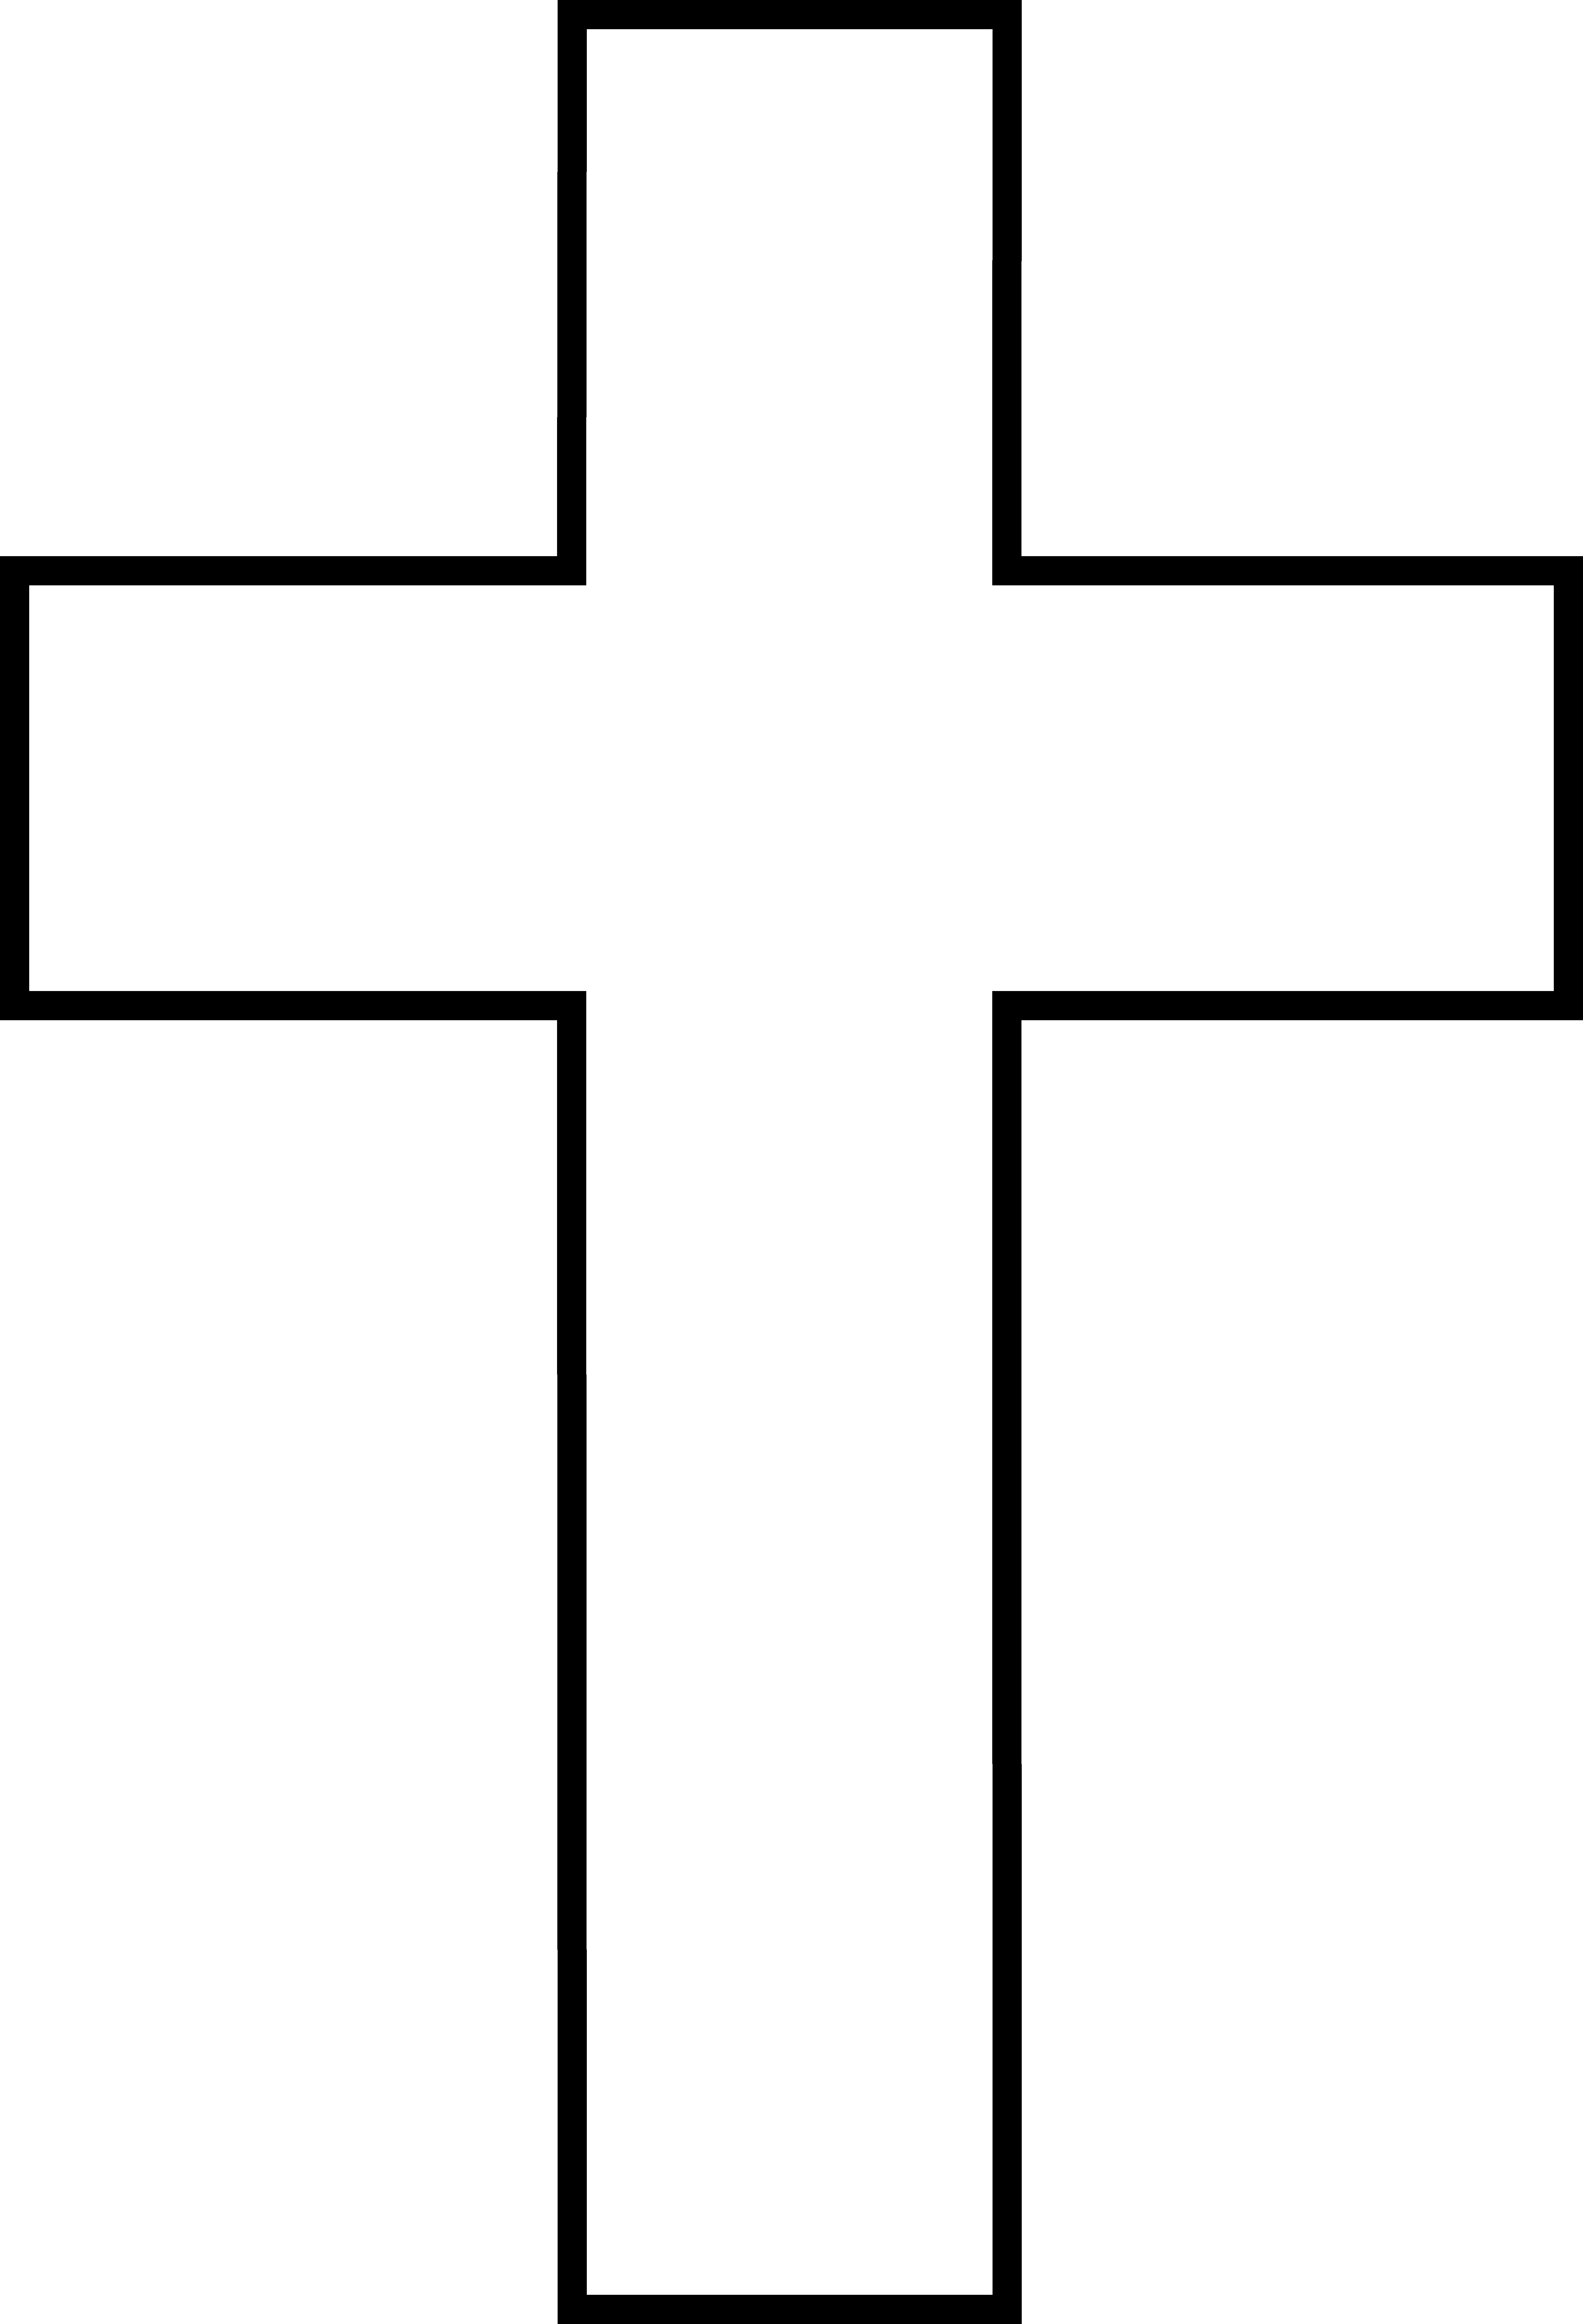 Christian vector simple cross designs. Image of black and